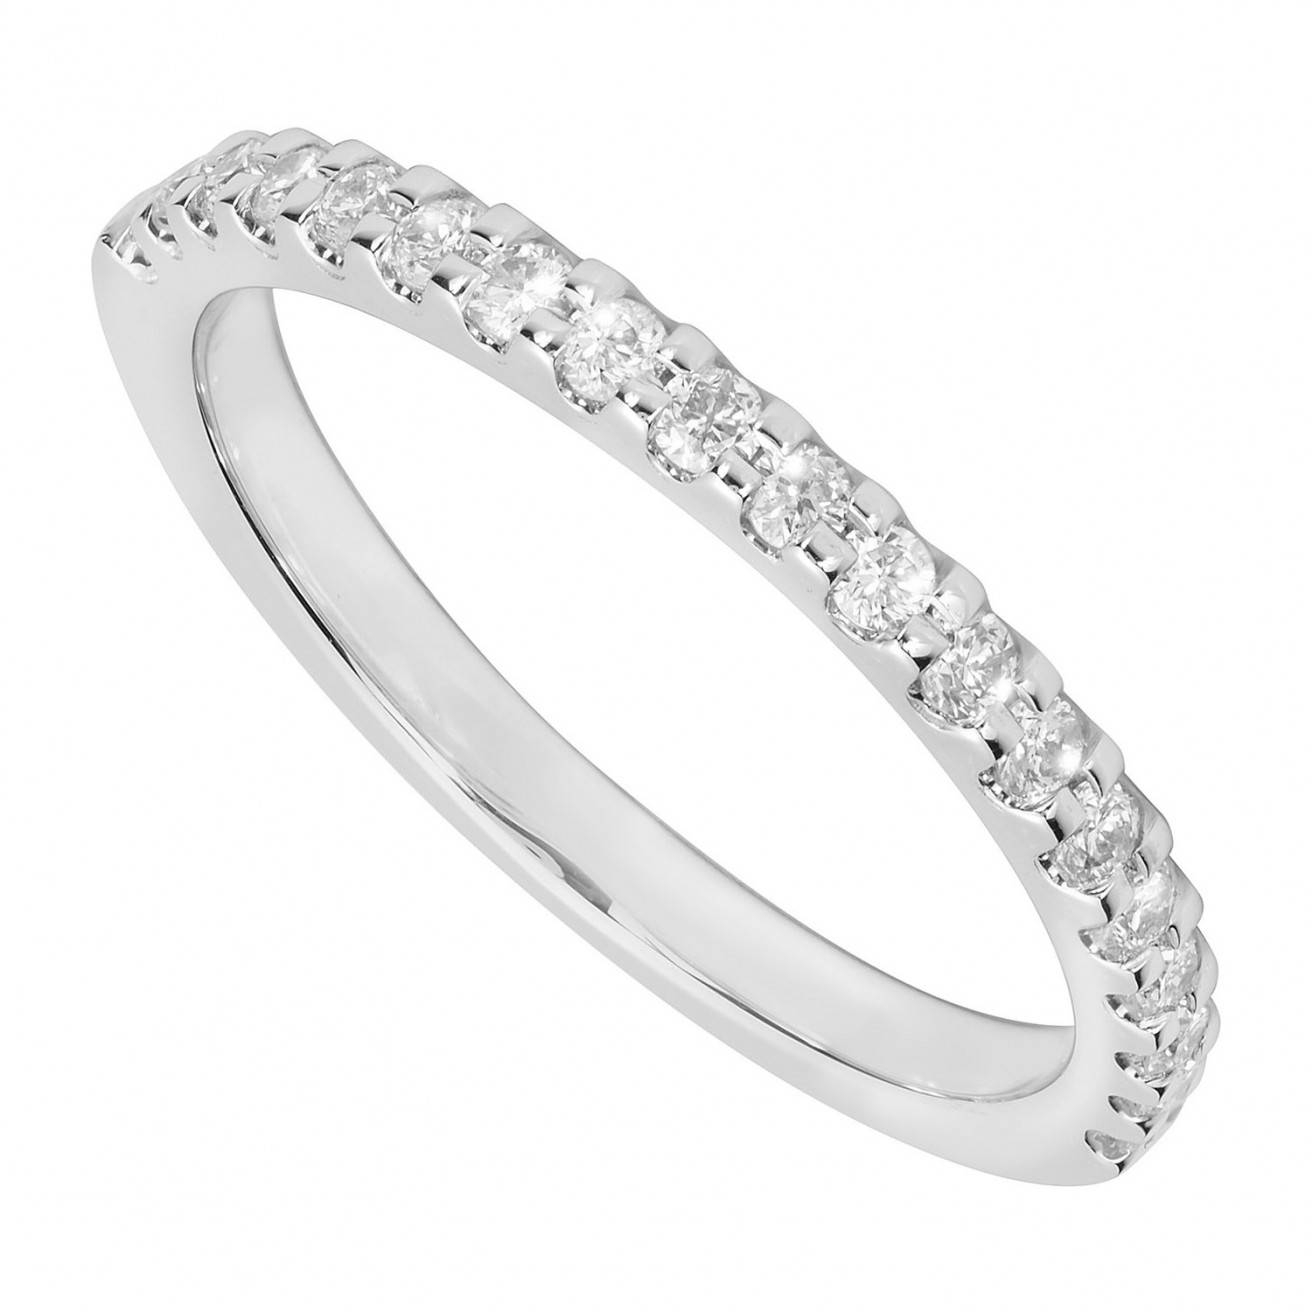 Wedding Rings : Platinum Wedding Ring Sets Women's Wedding Bands Intended For Most Recently Released Platinum Wedding Band With Diamonds (View 15 of 15)